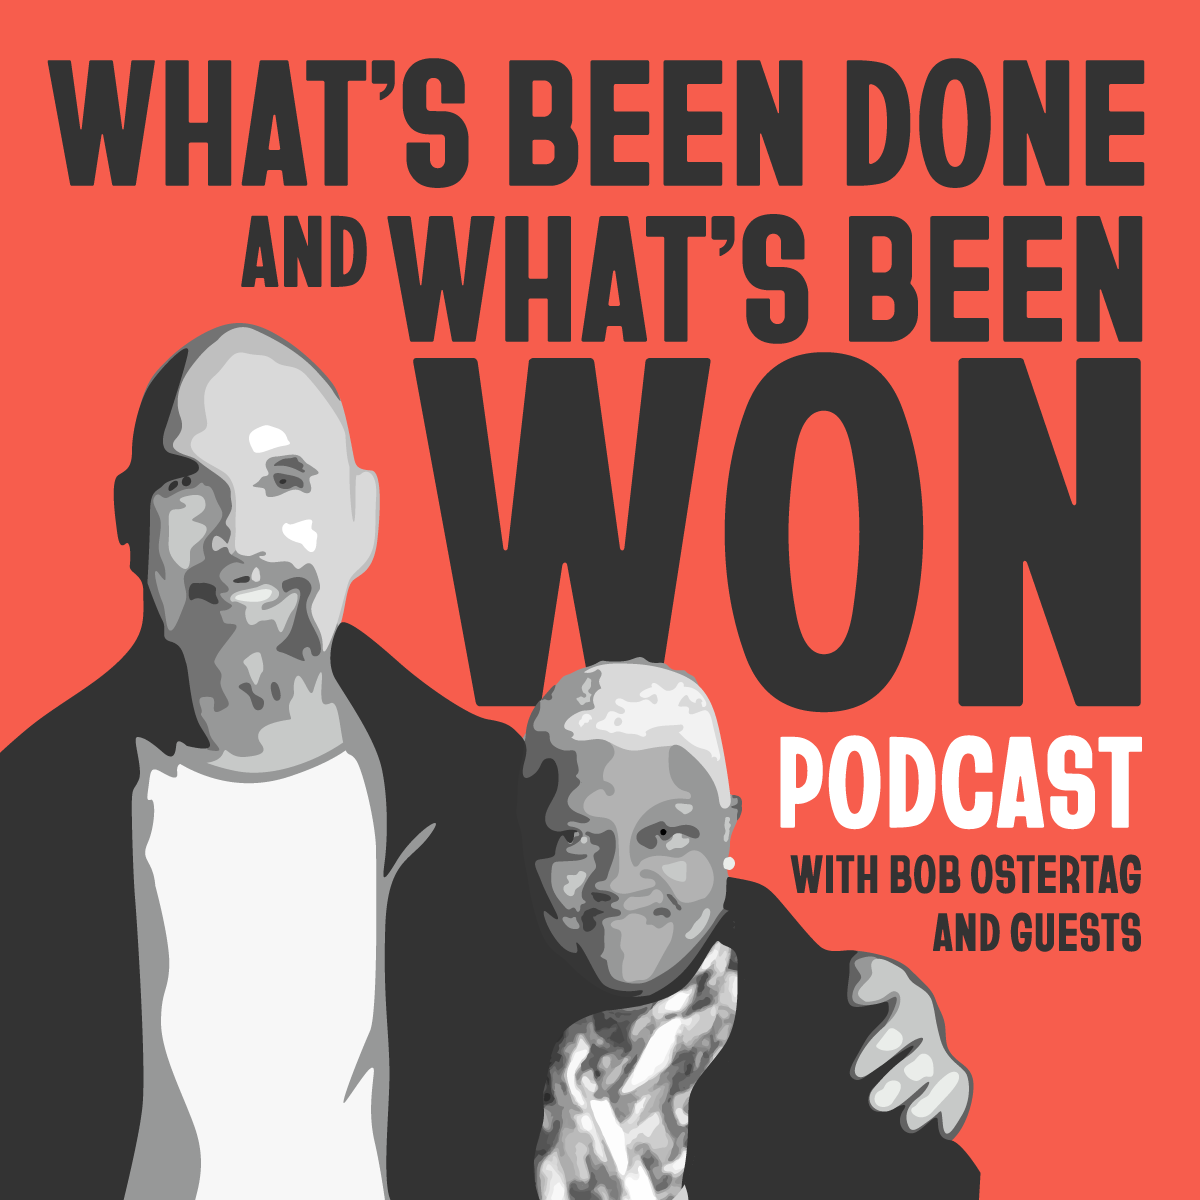 What's Been Done and What's Been Won Podcast